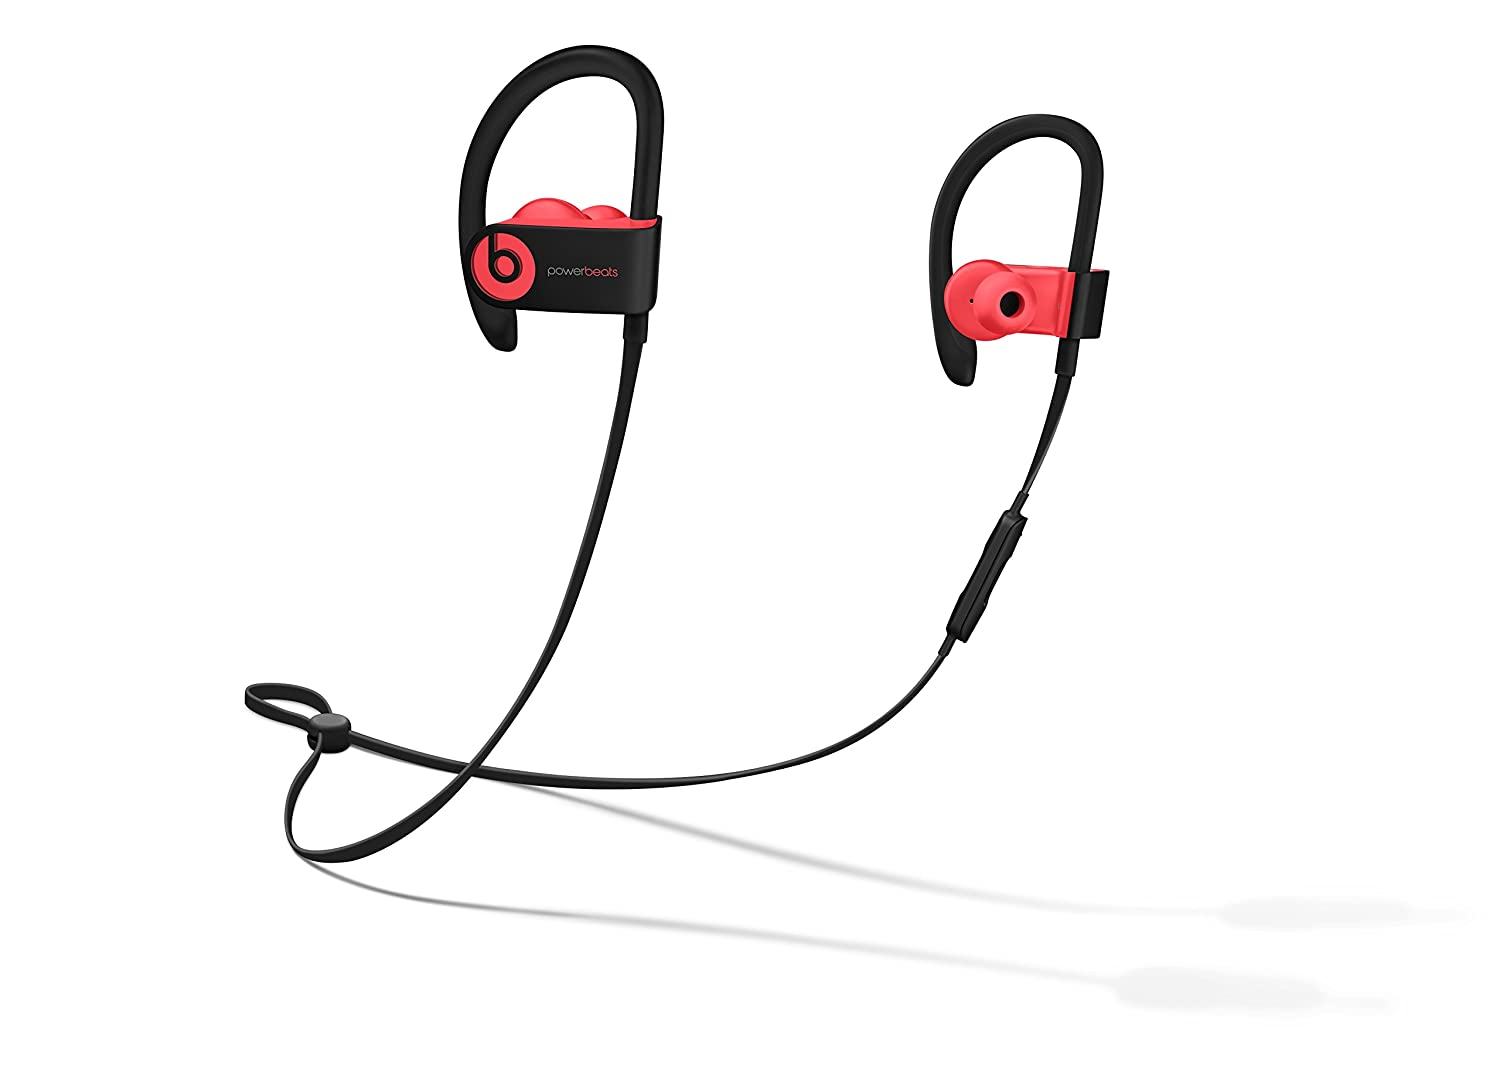 Headphone  Beats by Dr Dre  Beats by Dr Dre Powerbeats3 Wireless Earphones - Siren Red, Model A1747 (MNLY2ZM A)